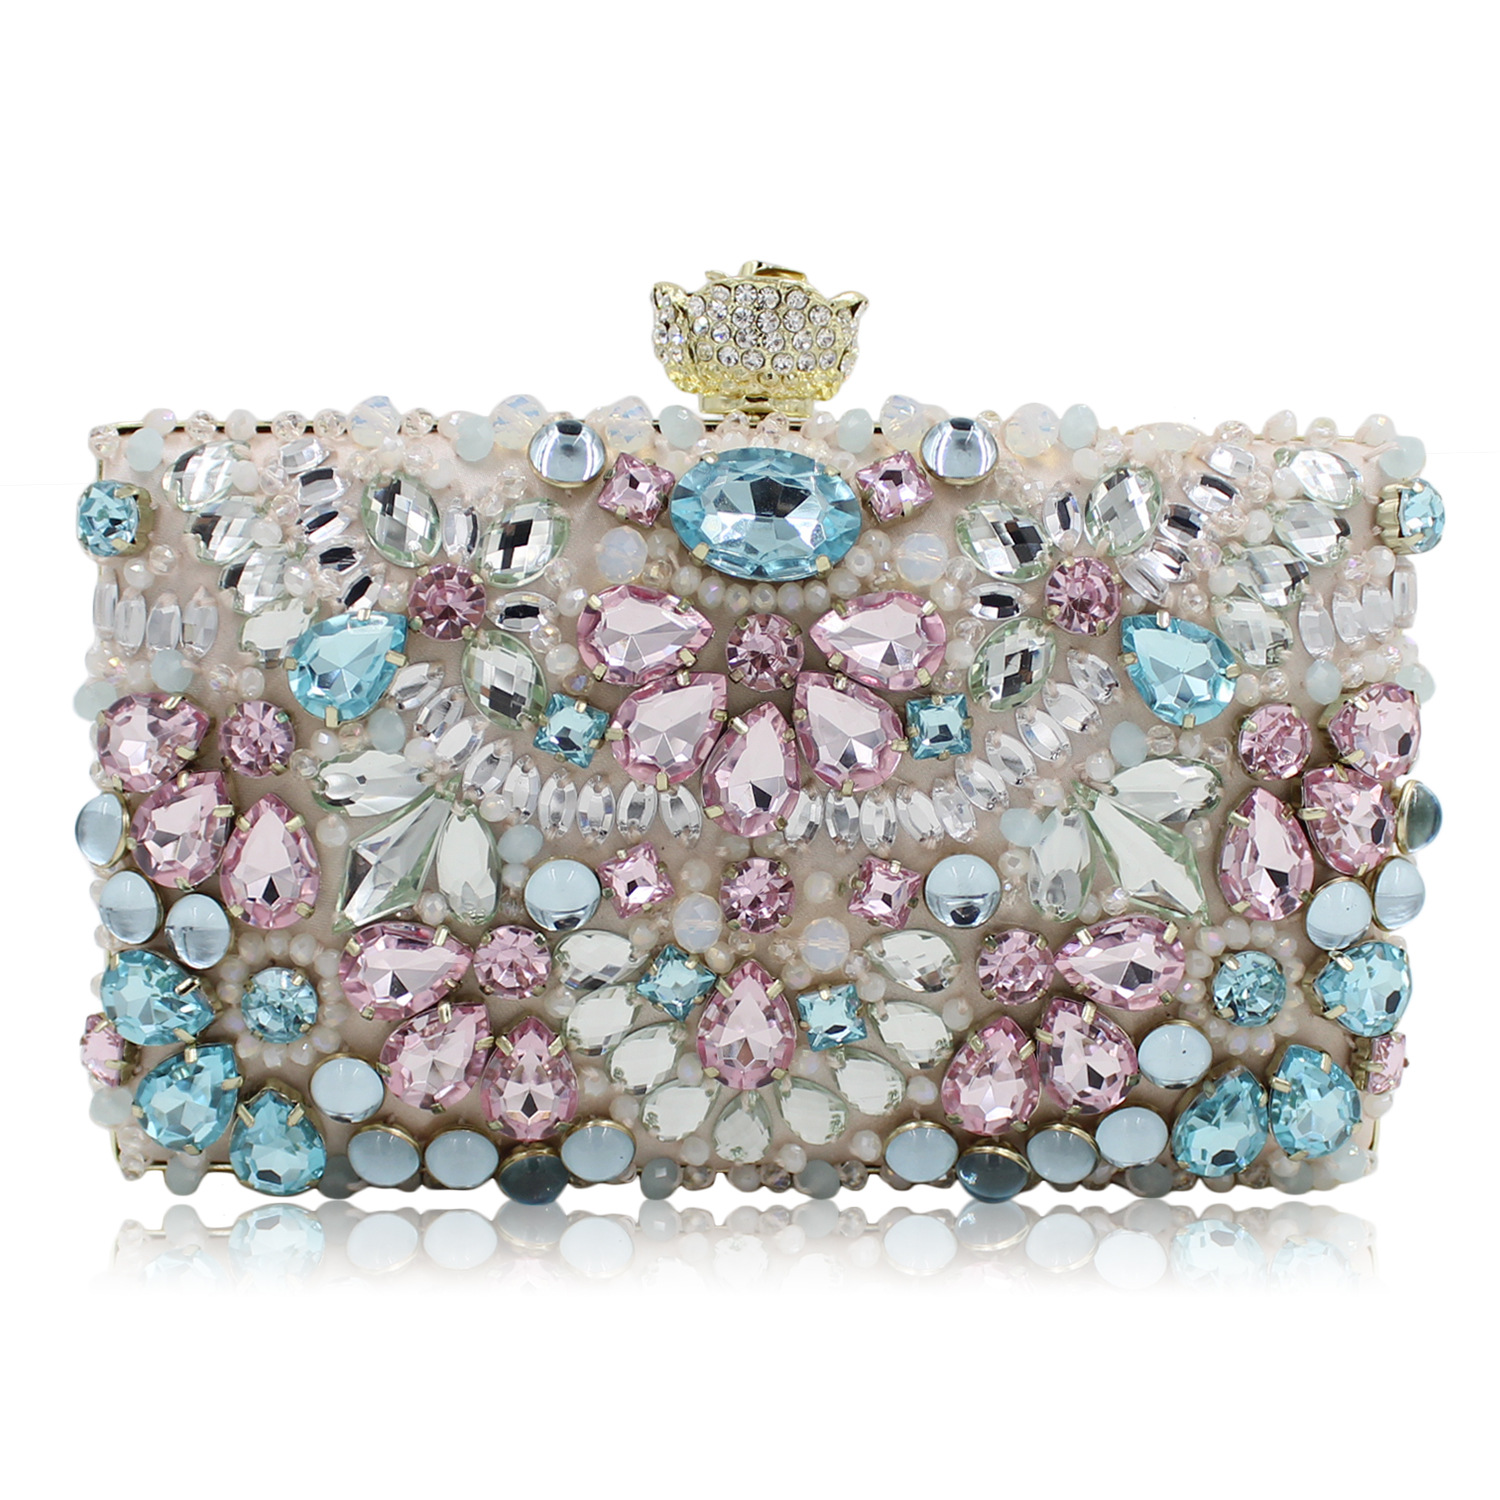 2017 Diamonds Day Clutches Purses Chain Handbags Women Beads Embroidery Clutch Evening Bags Ladies Bridal Wedding Party Bag new sequin clutch bag finger ring evening bag hard box clutch chain sshoulder bag crossbody bags for women purses and handbags